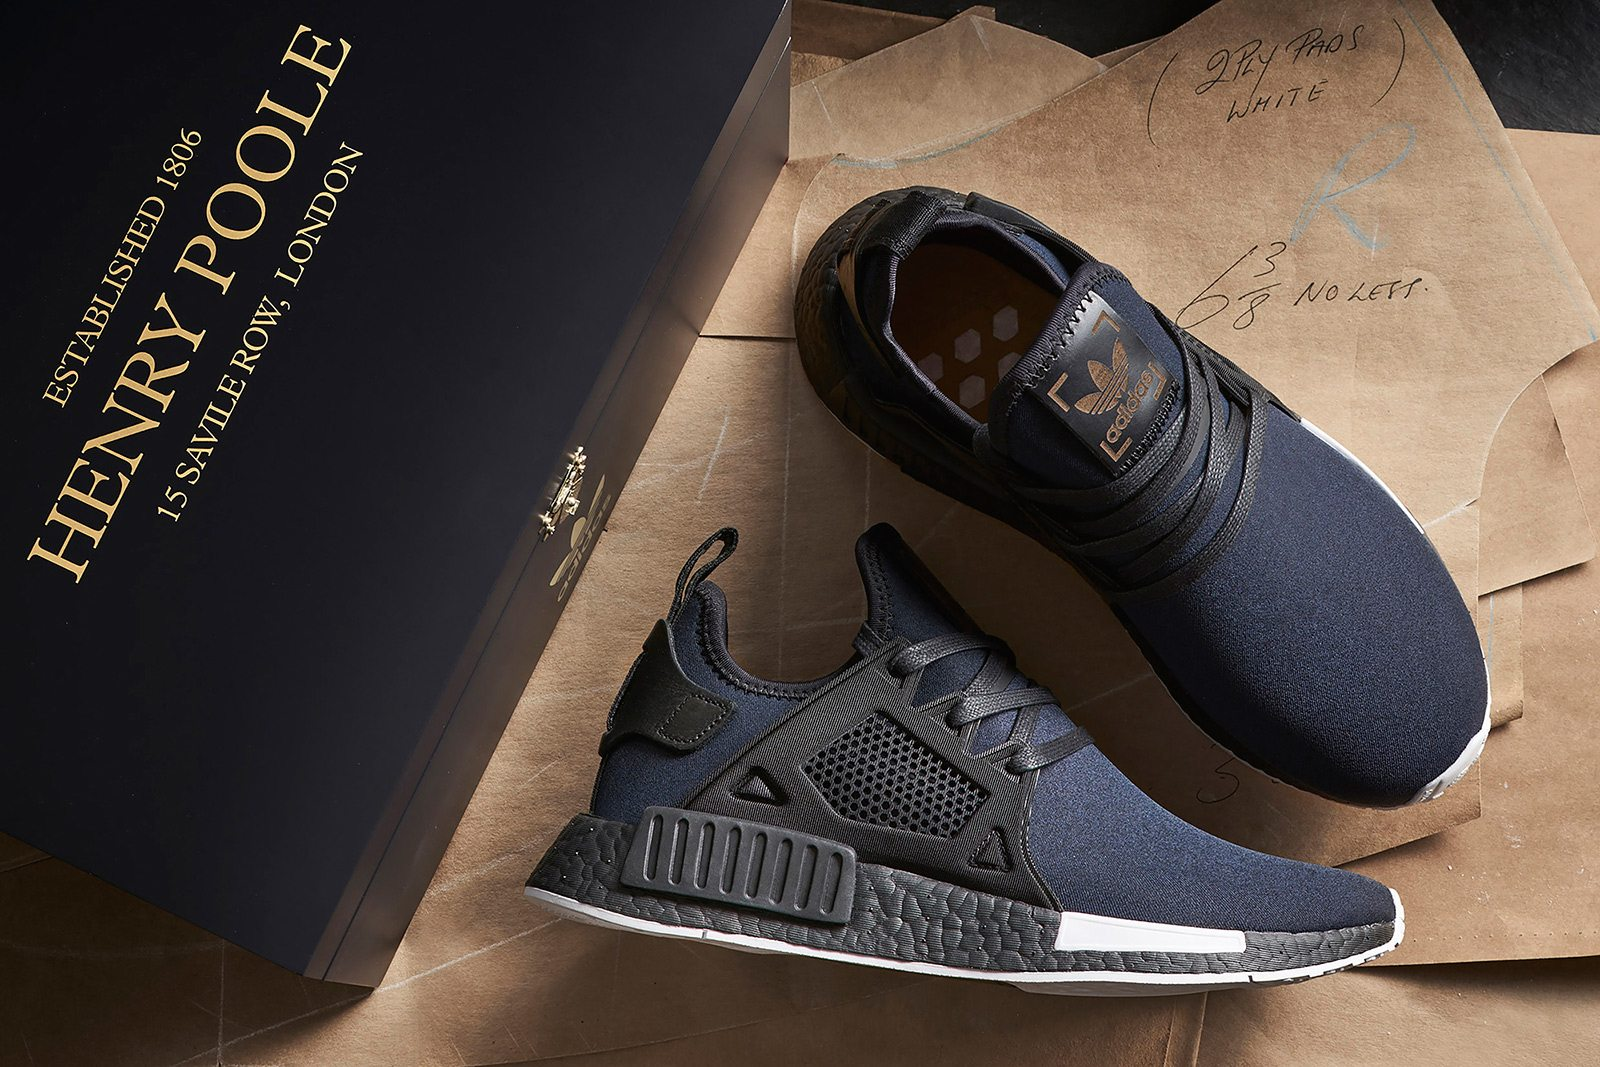 cheap for discount 8e093 ab12c Savile Row Sneakers: Henry Poole x Adidas Originals - Oracle ...